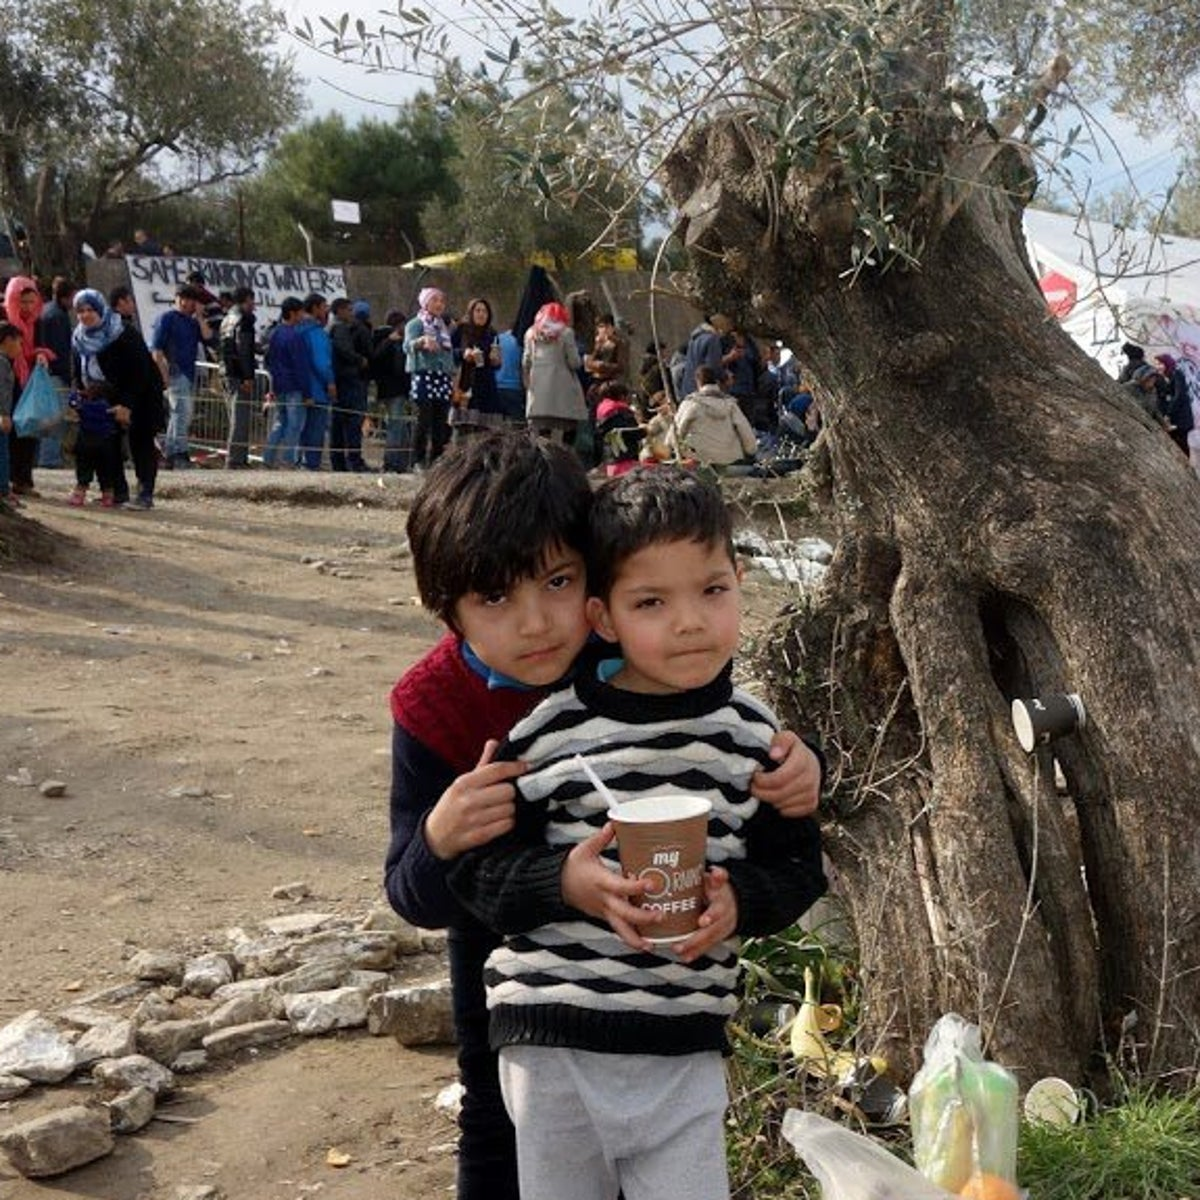 Refugee children posing for a picture together on the Greek island of Lesbos.